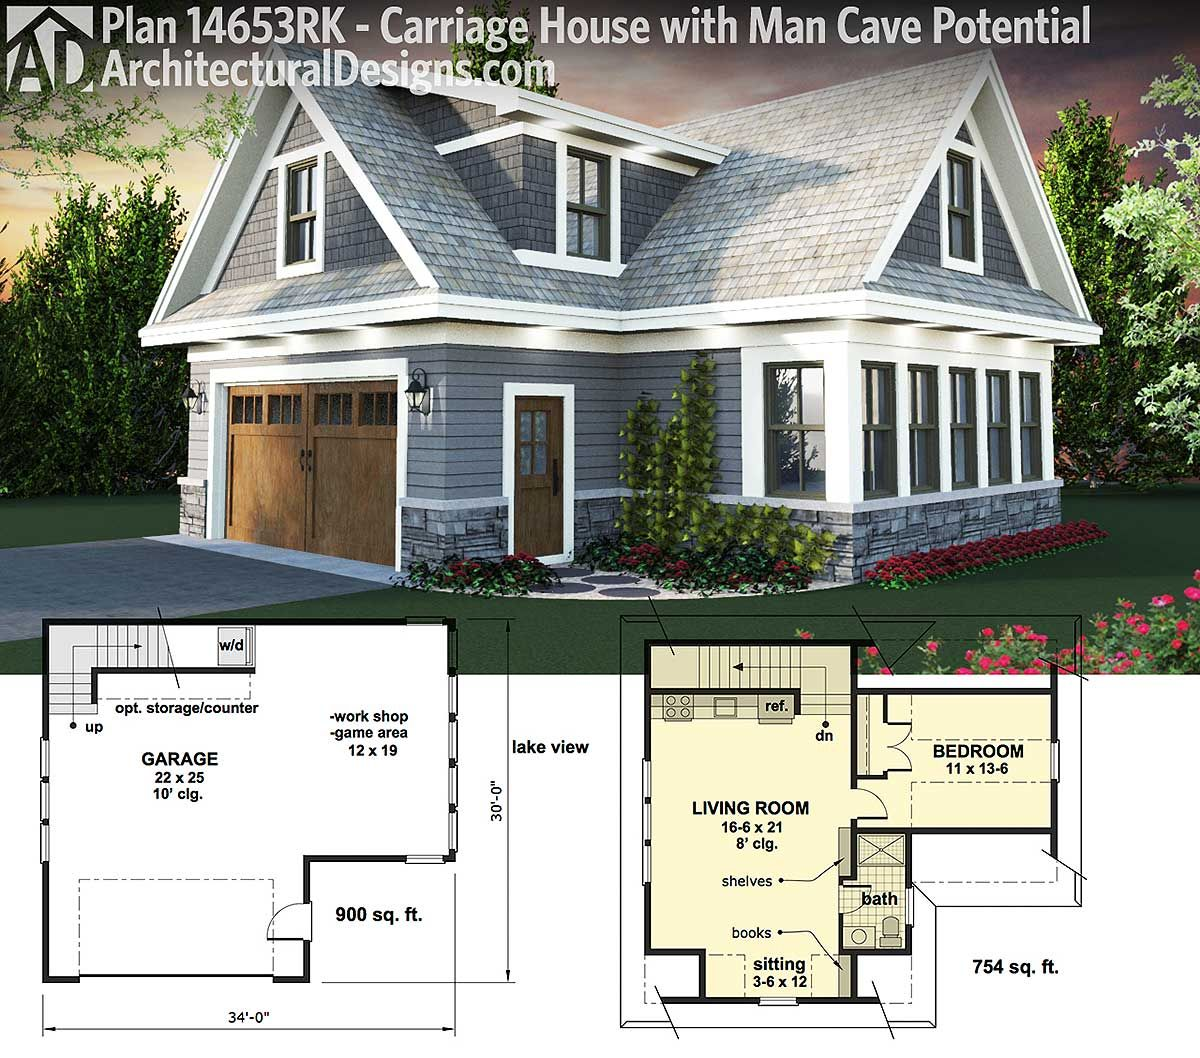 Plan 14653rk carriage house plan with man cave potential for Small house plans with garage